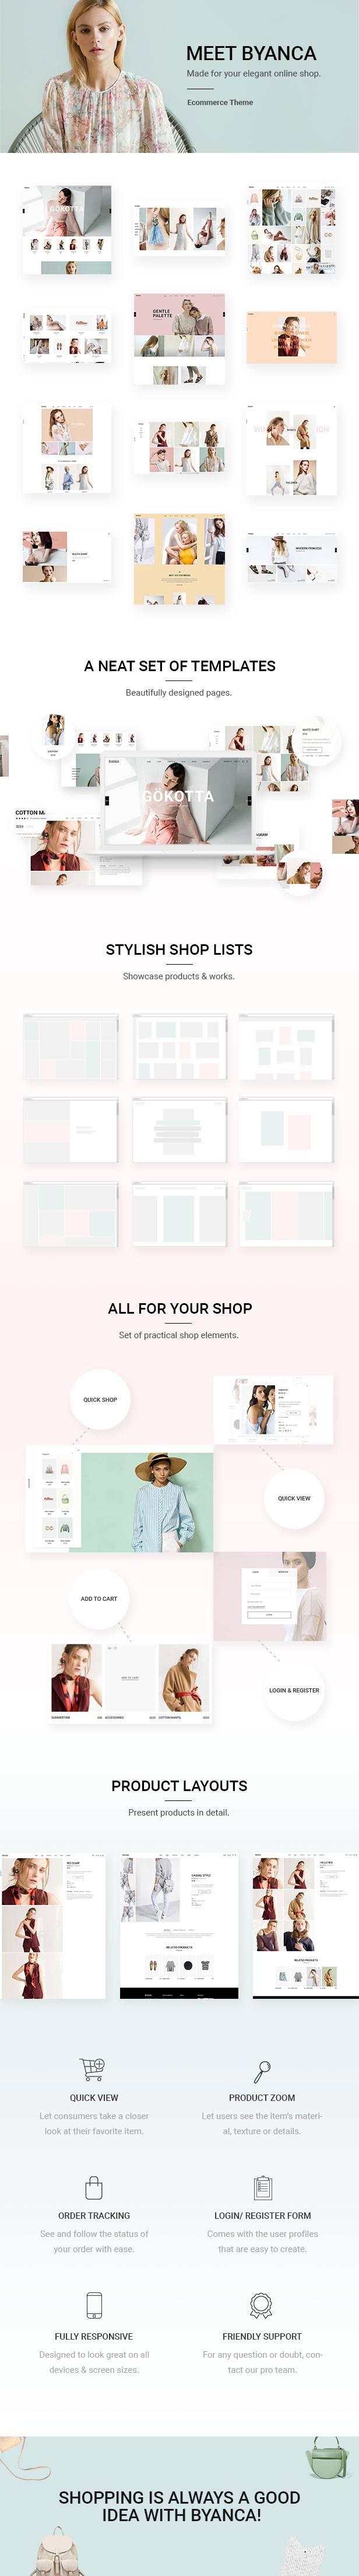 Byanca - Modern WooCommerce Theme for Clothing Brands and Shops - 1